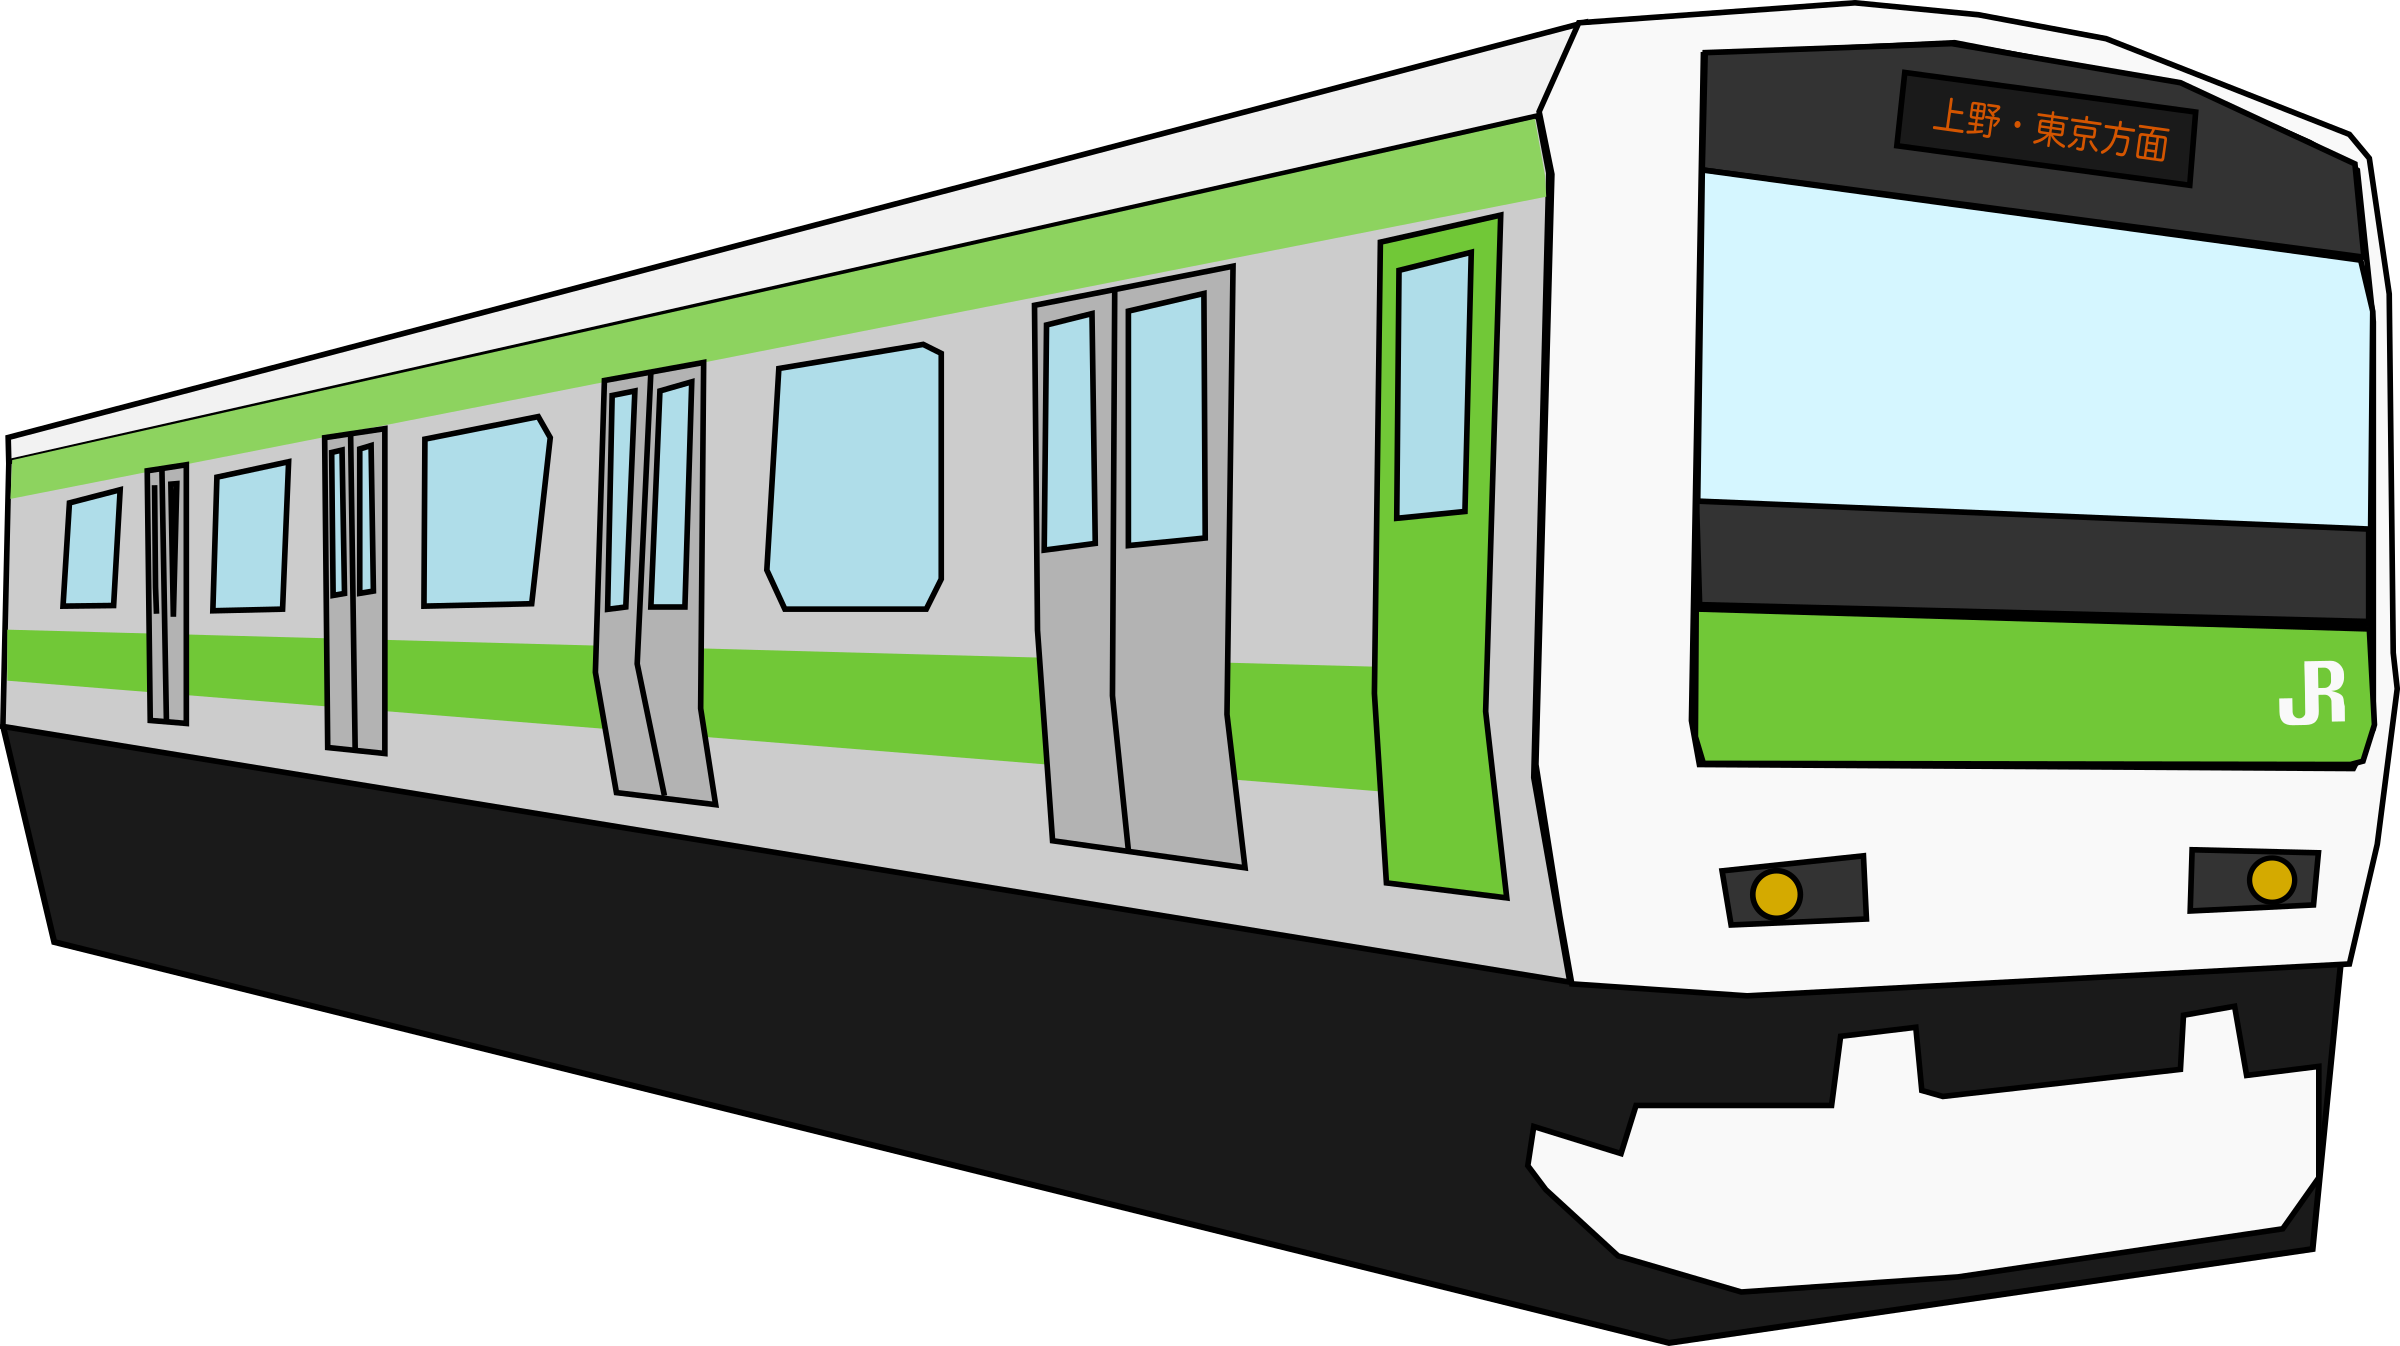 Yamanote Train by j4p4n